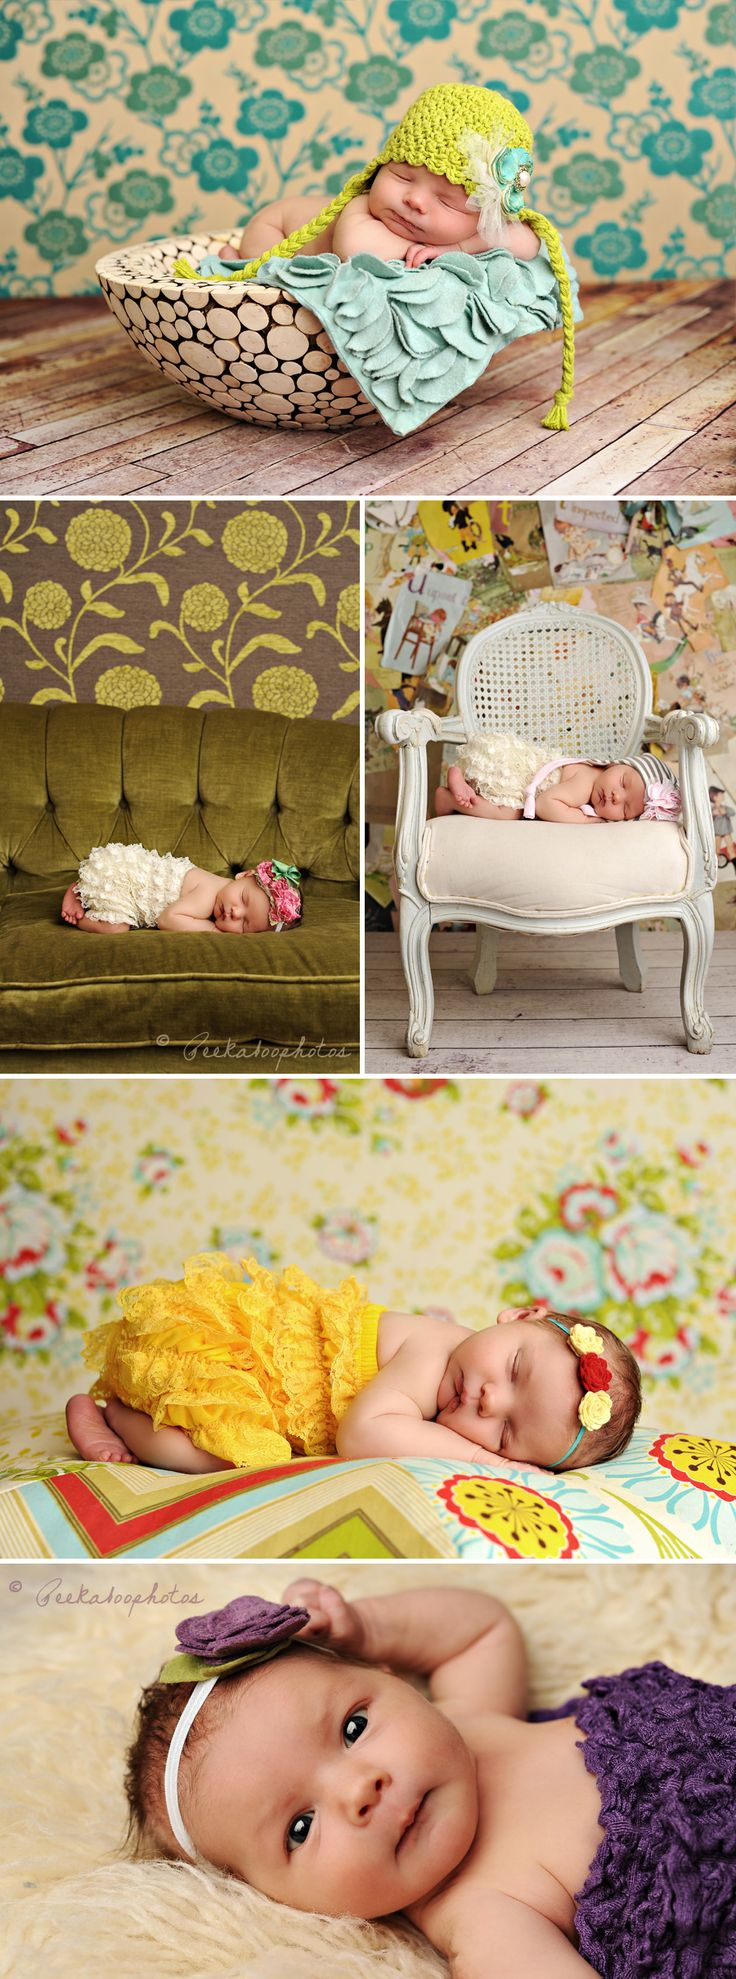 The most darling baby poses.